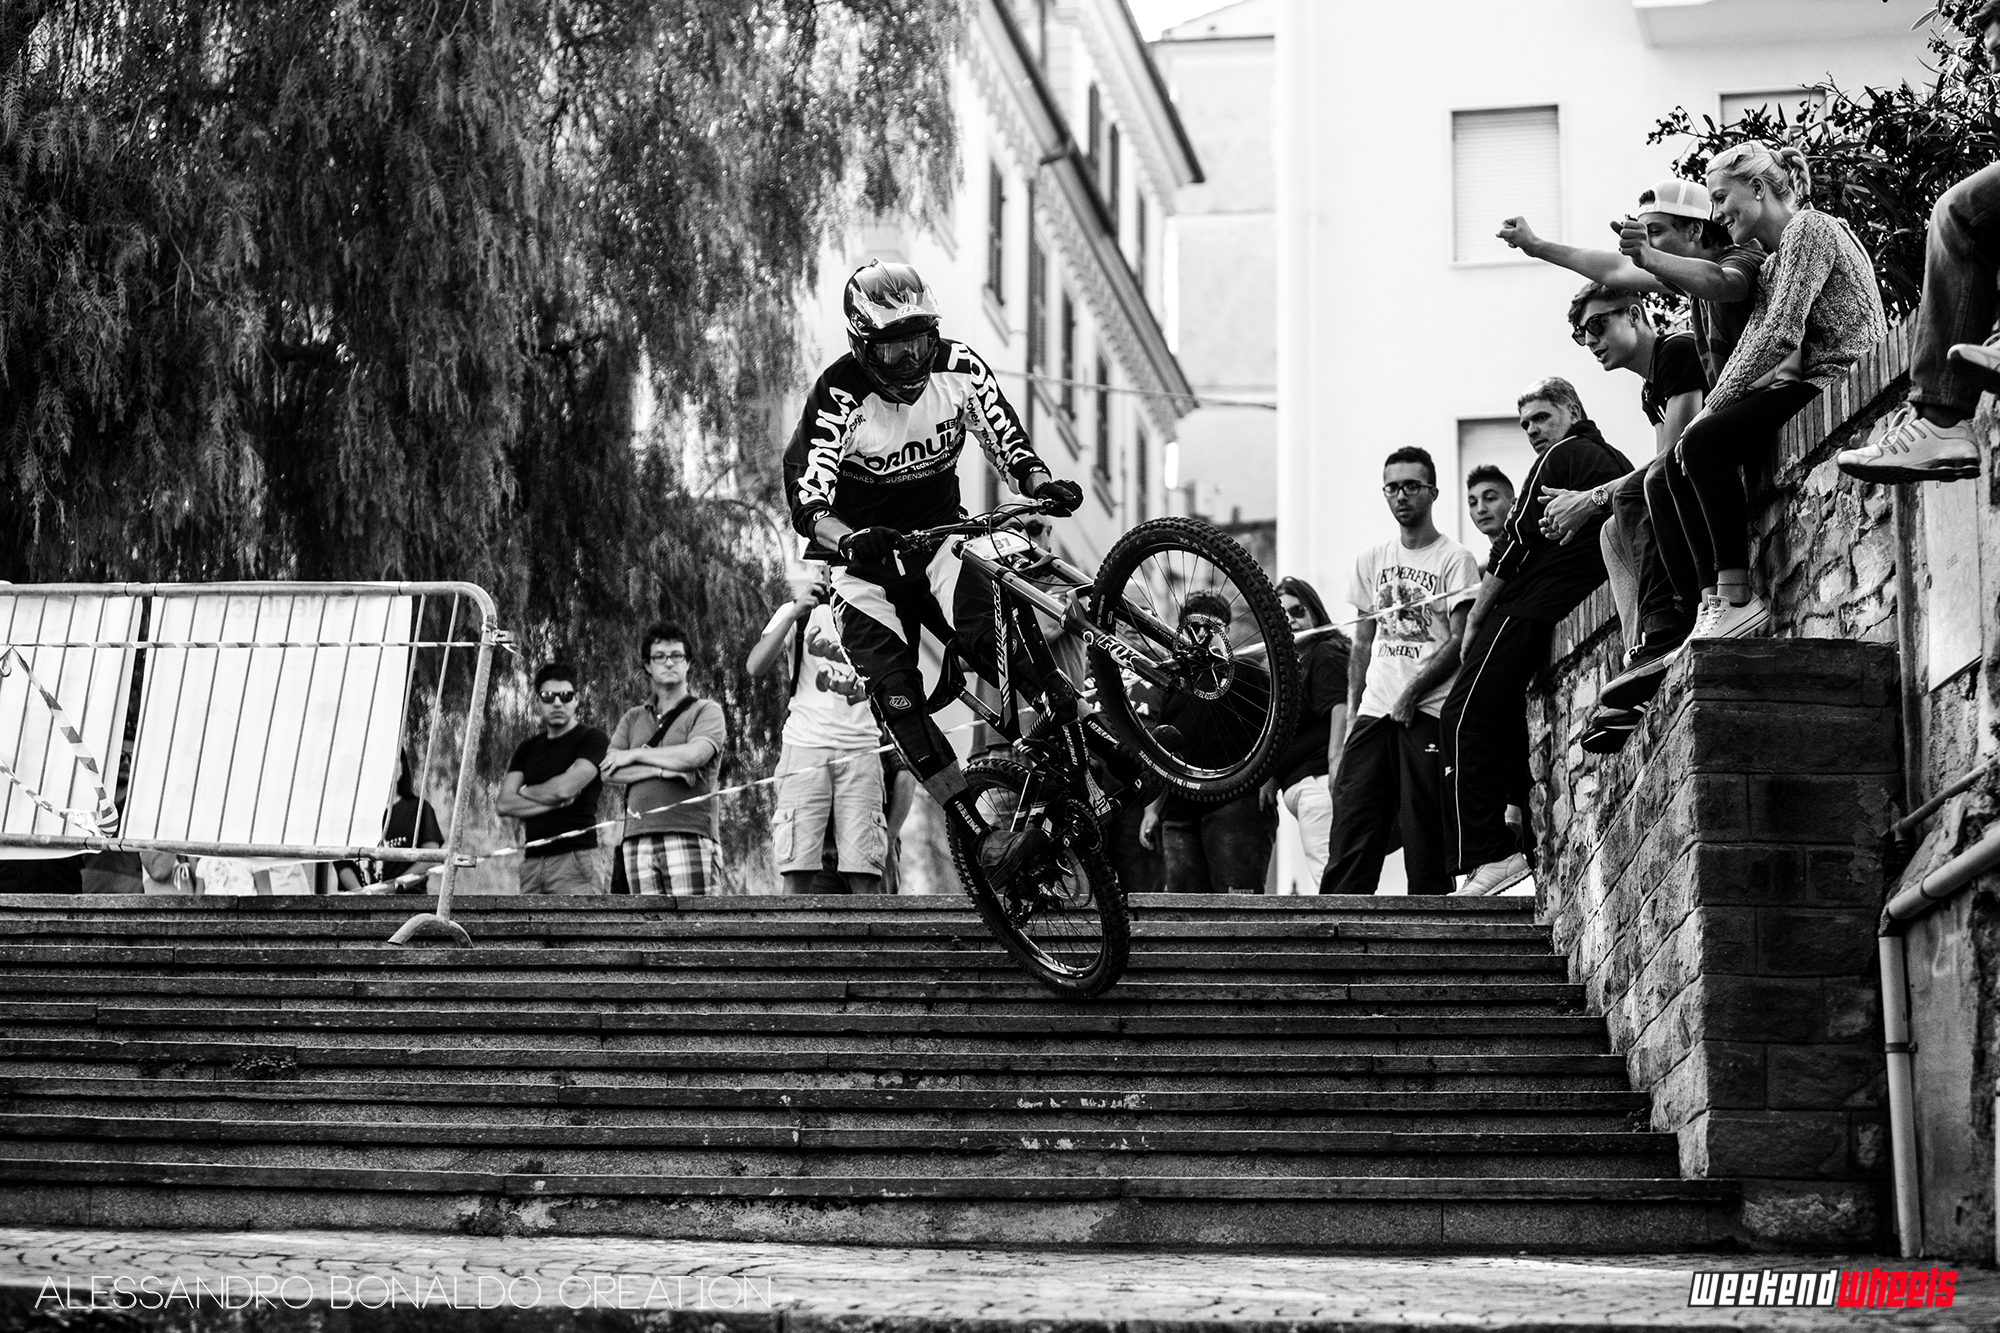 urban_downhill_imperia_2014_marini2